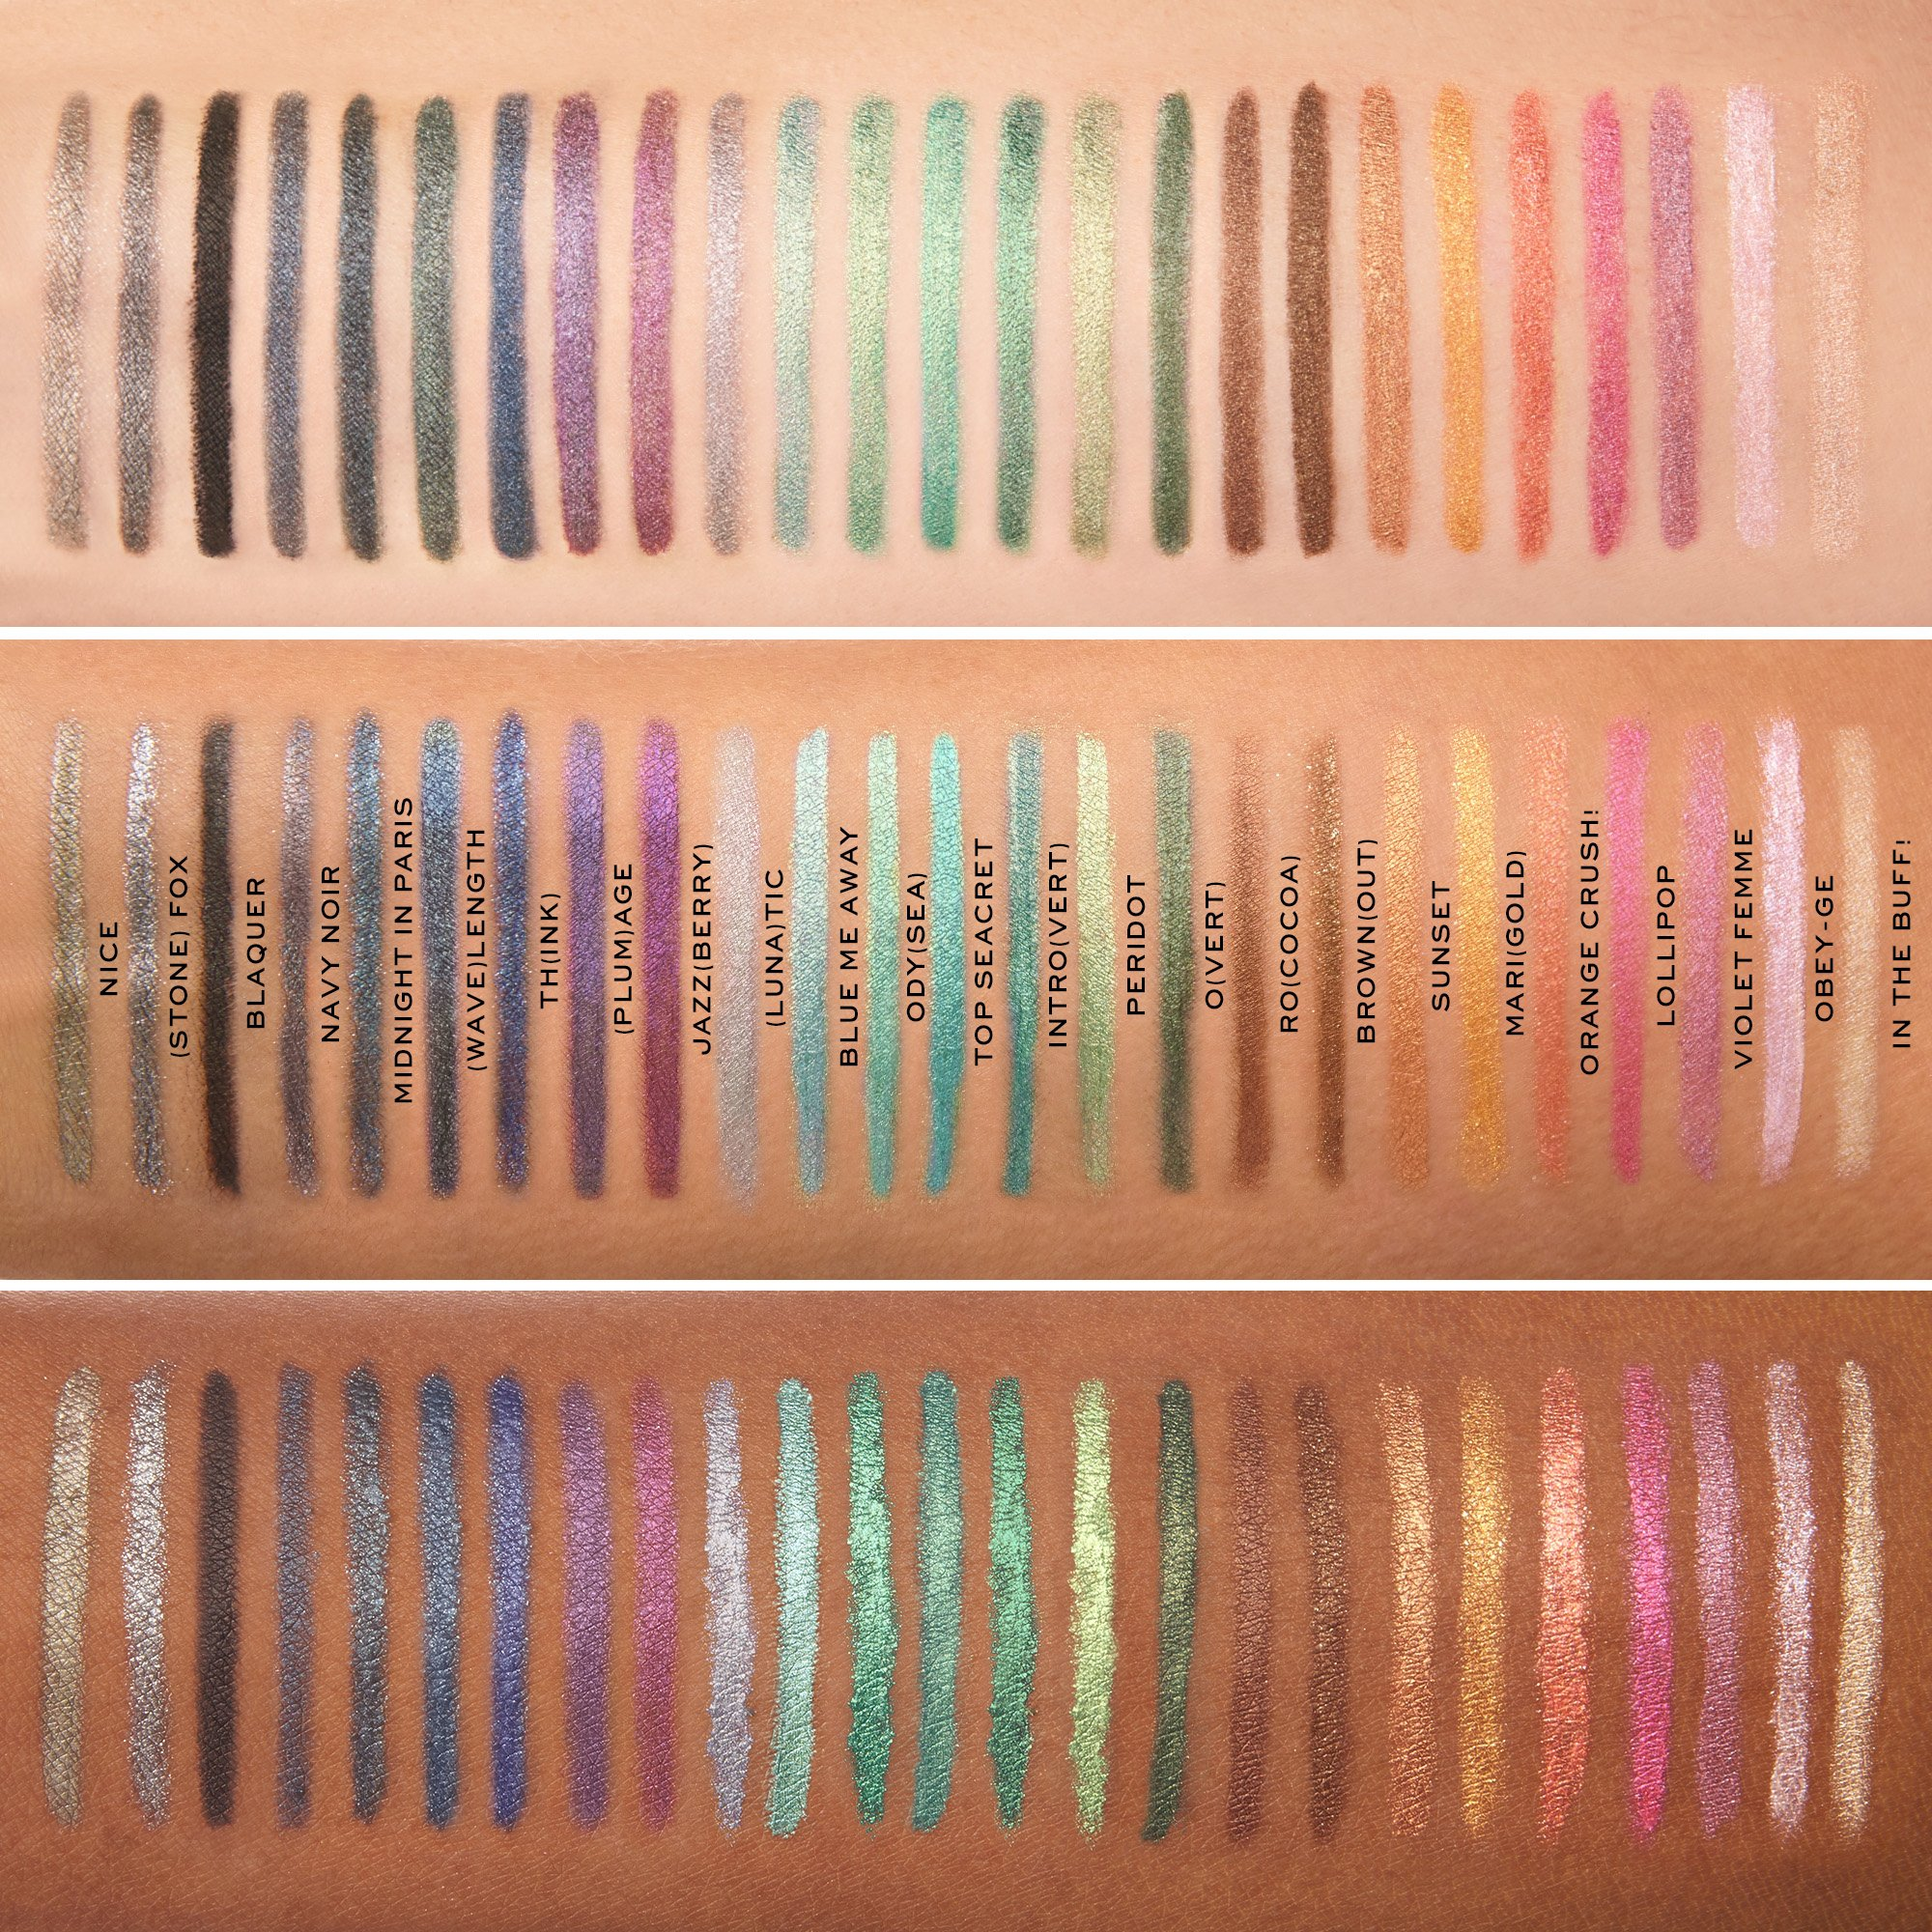 Marc Jacobs Highliner Eye Crayons Swatches with names